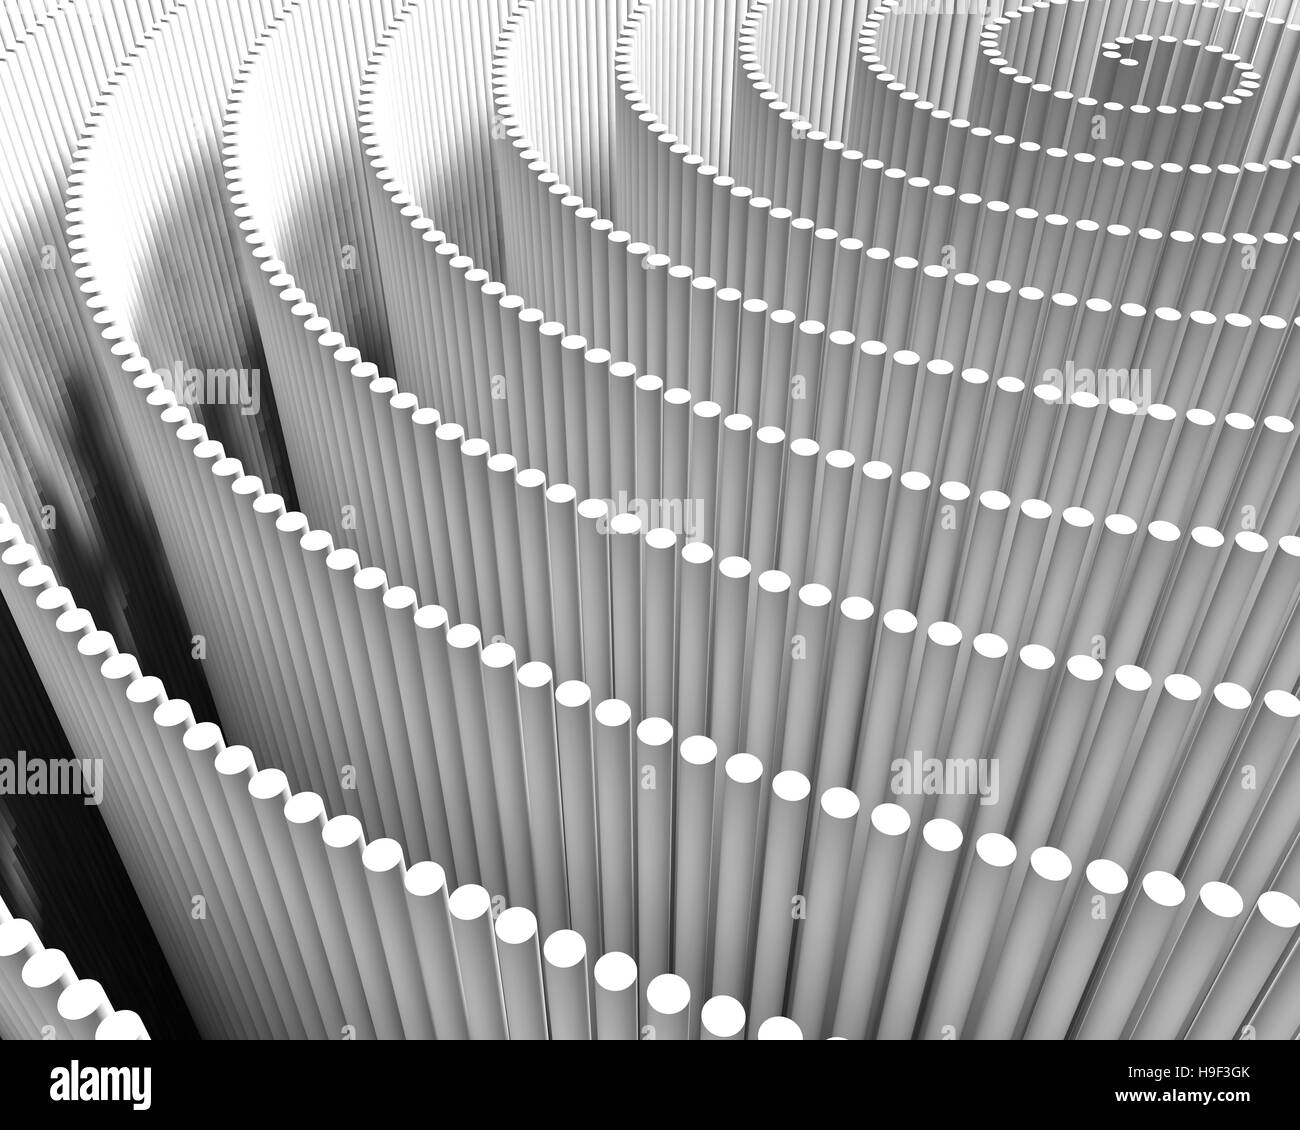 A spiral of white lines, abstract digital background pattern - Stock Image